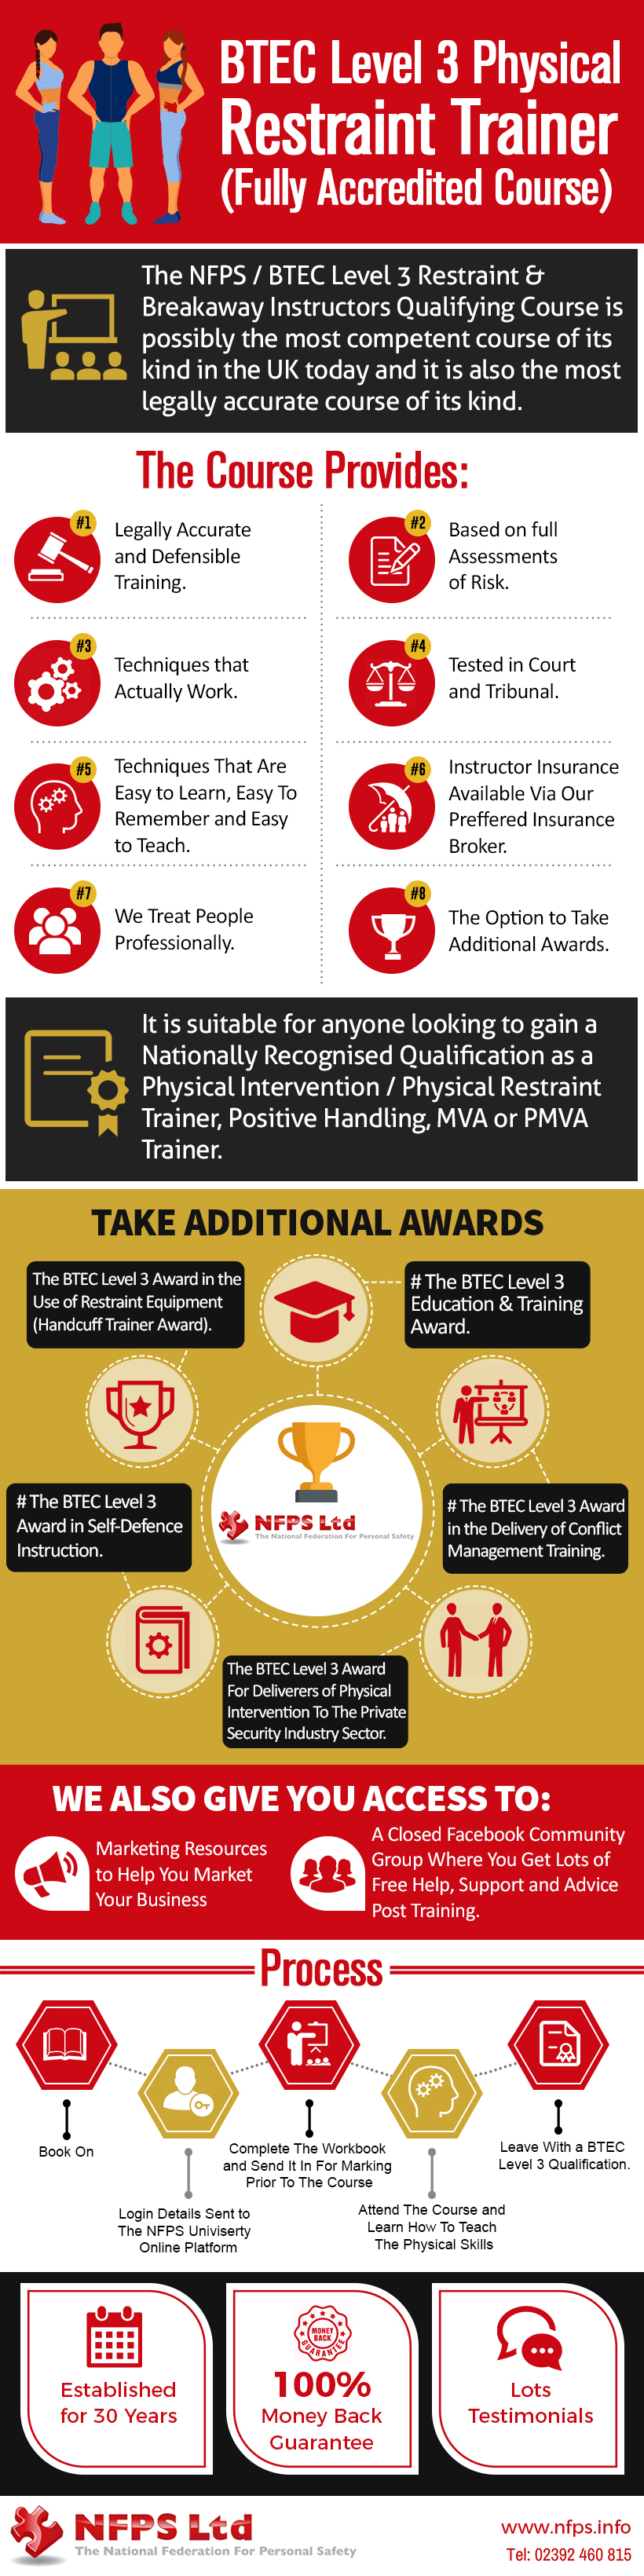 infographic-BTEC Level 3 Restraint Trainer Award